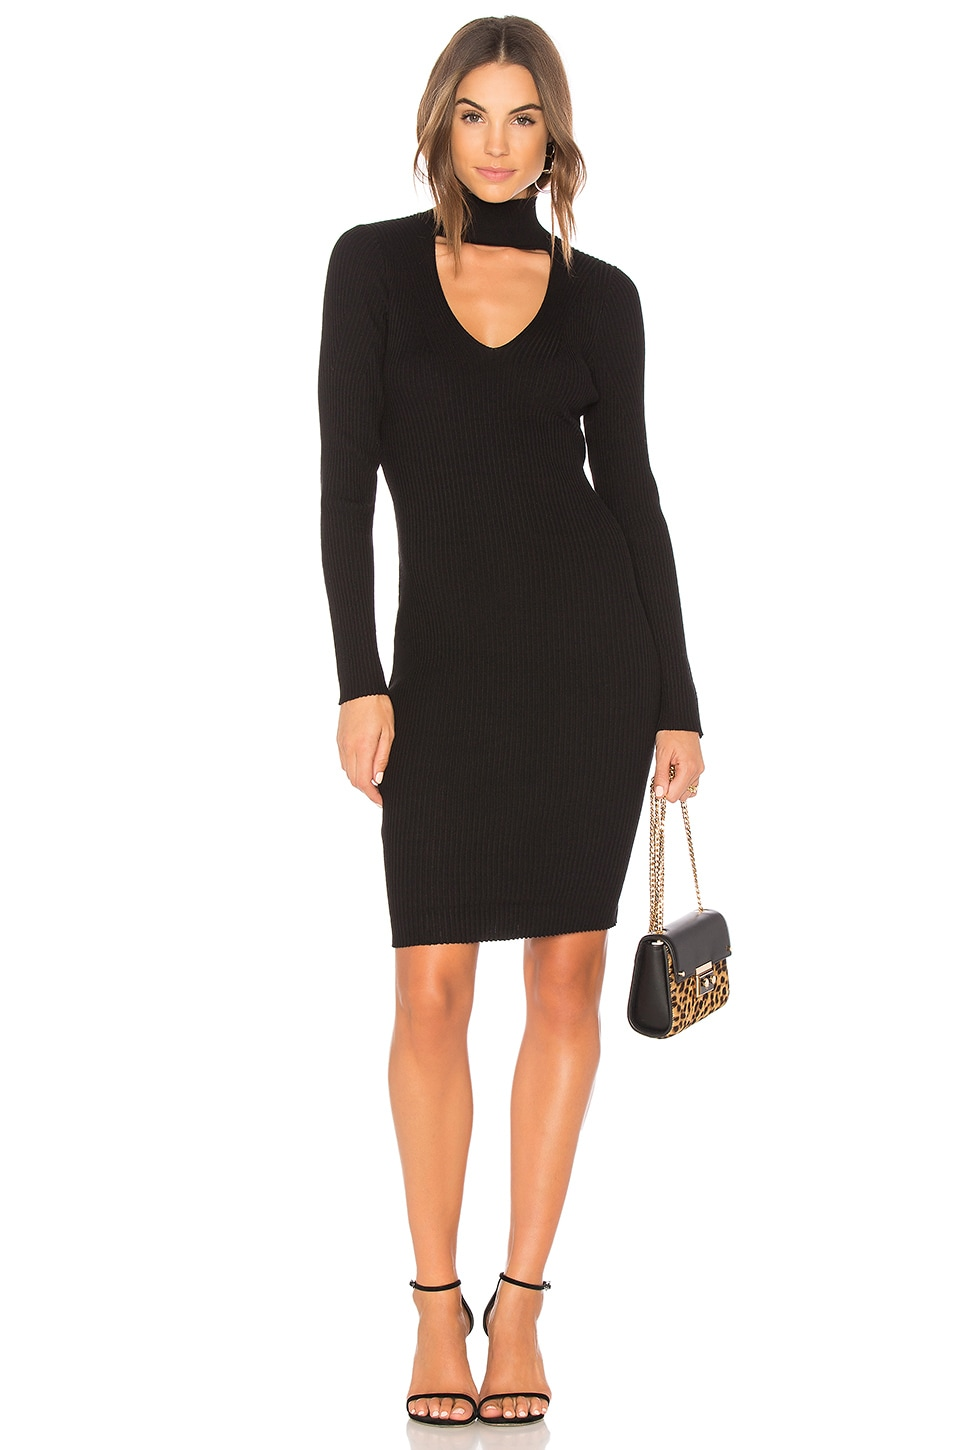 Ophelia Sweater Dress